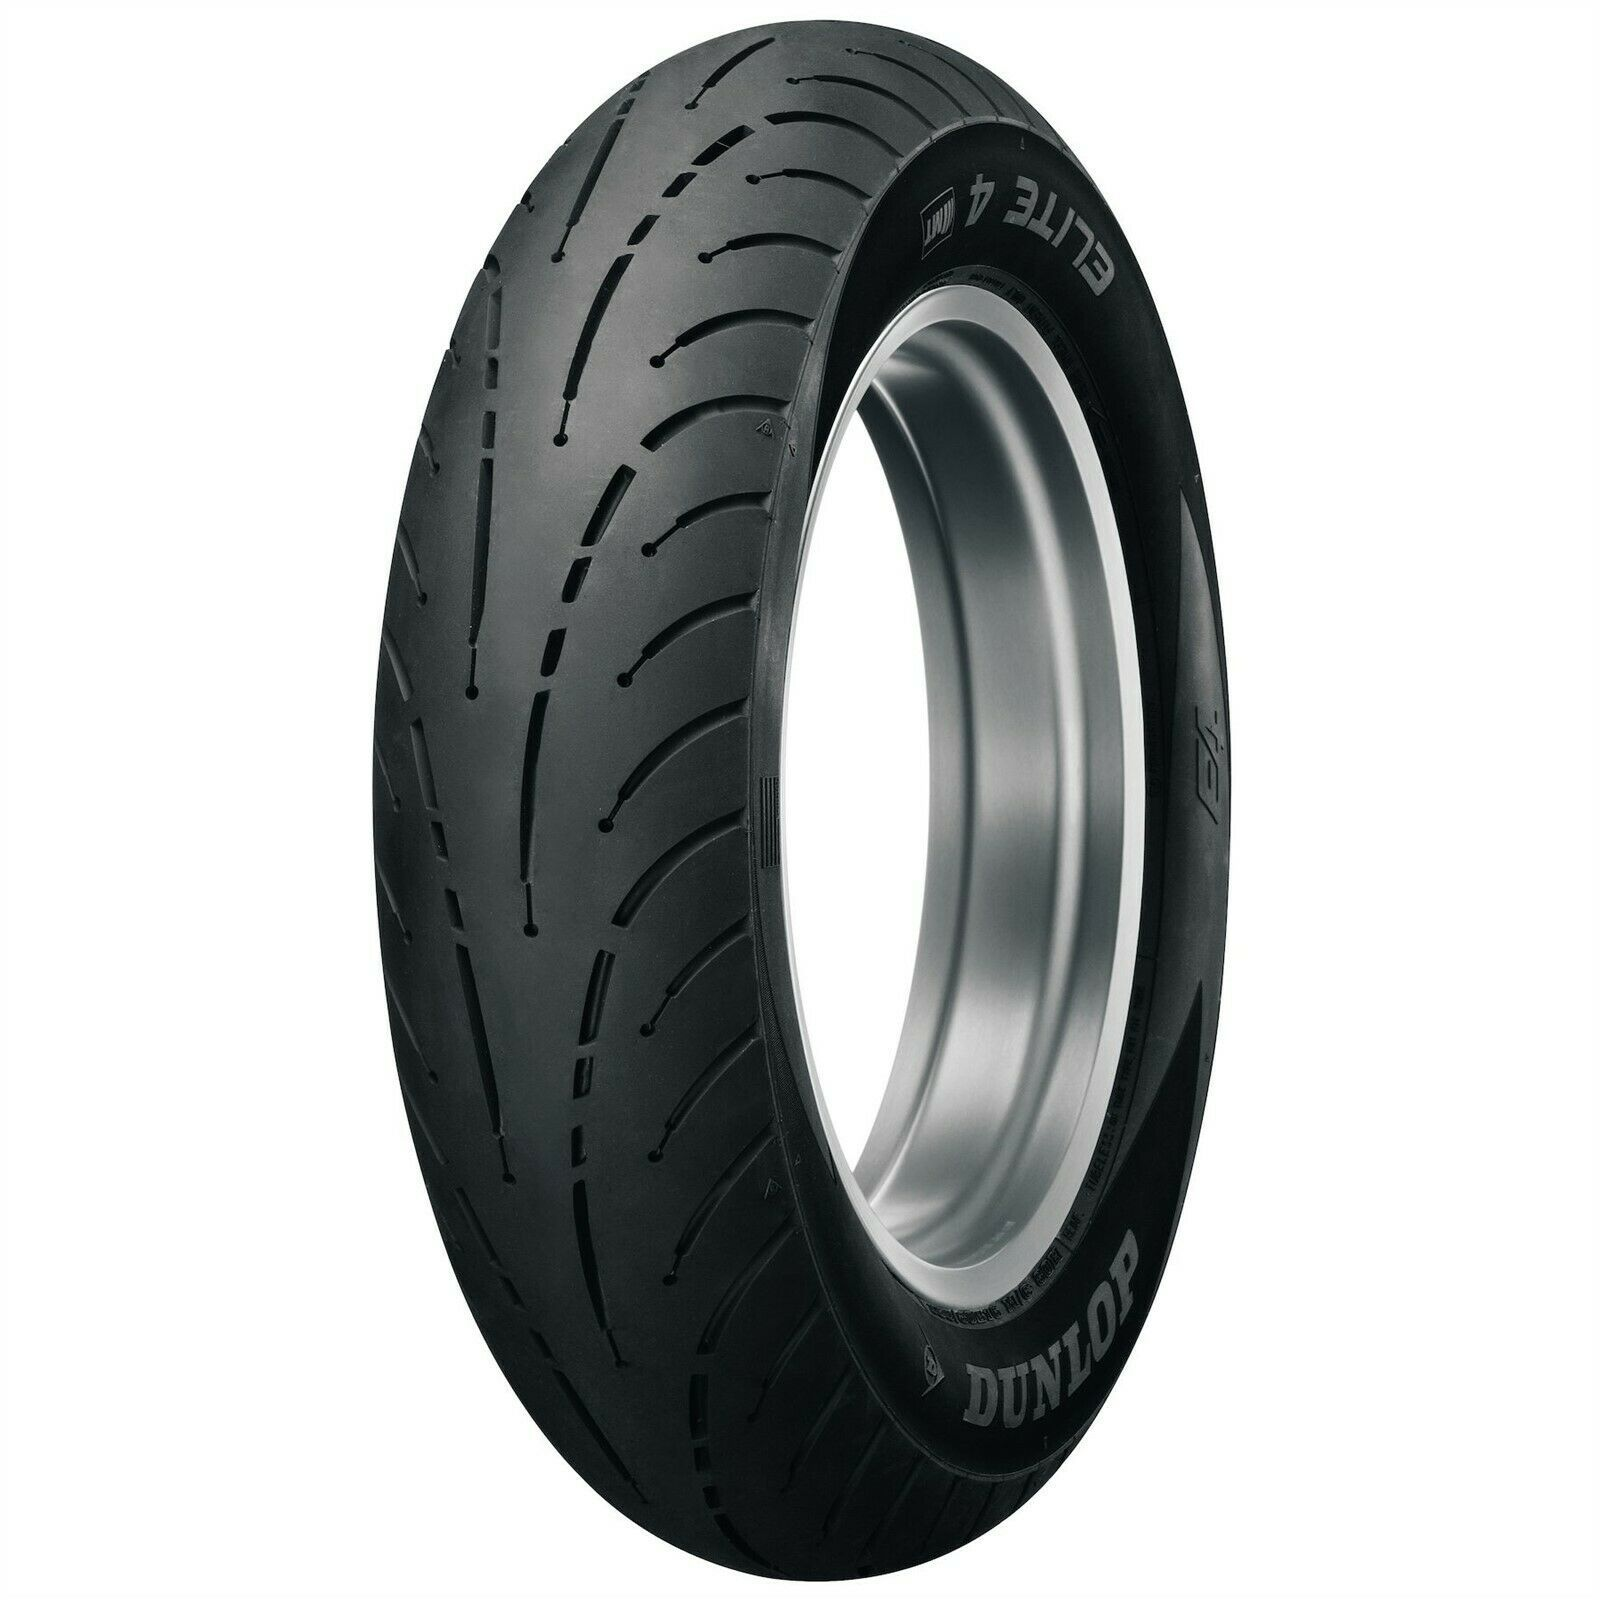 New Dunlop Elite 4 160/80-16 Bias Rear Motorcycle Tire 80H High Mileage